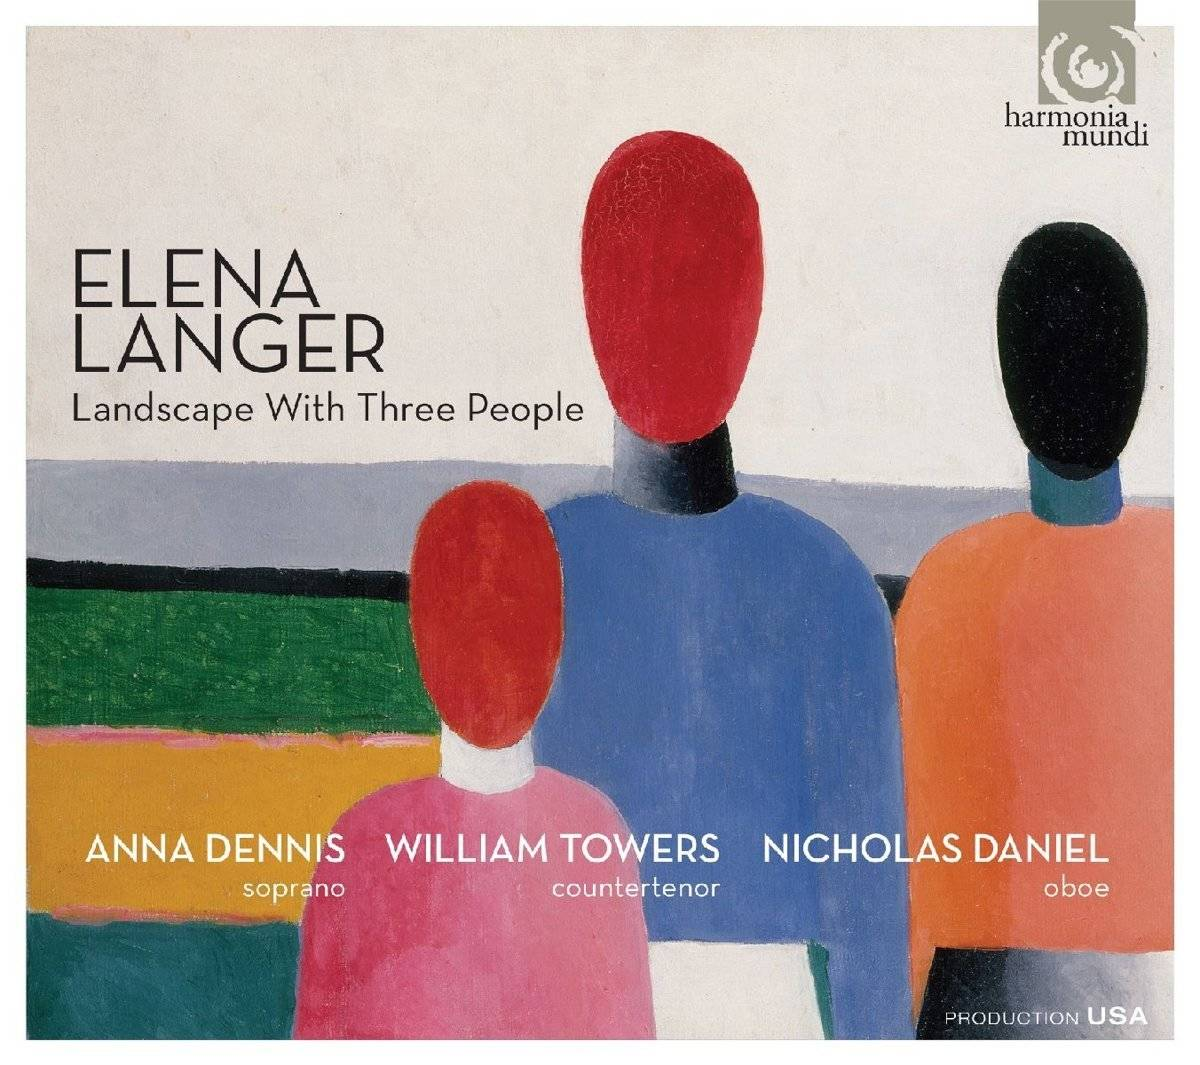 Elena Langer: Landscape With Three People